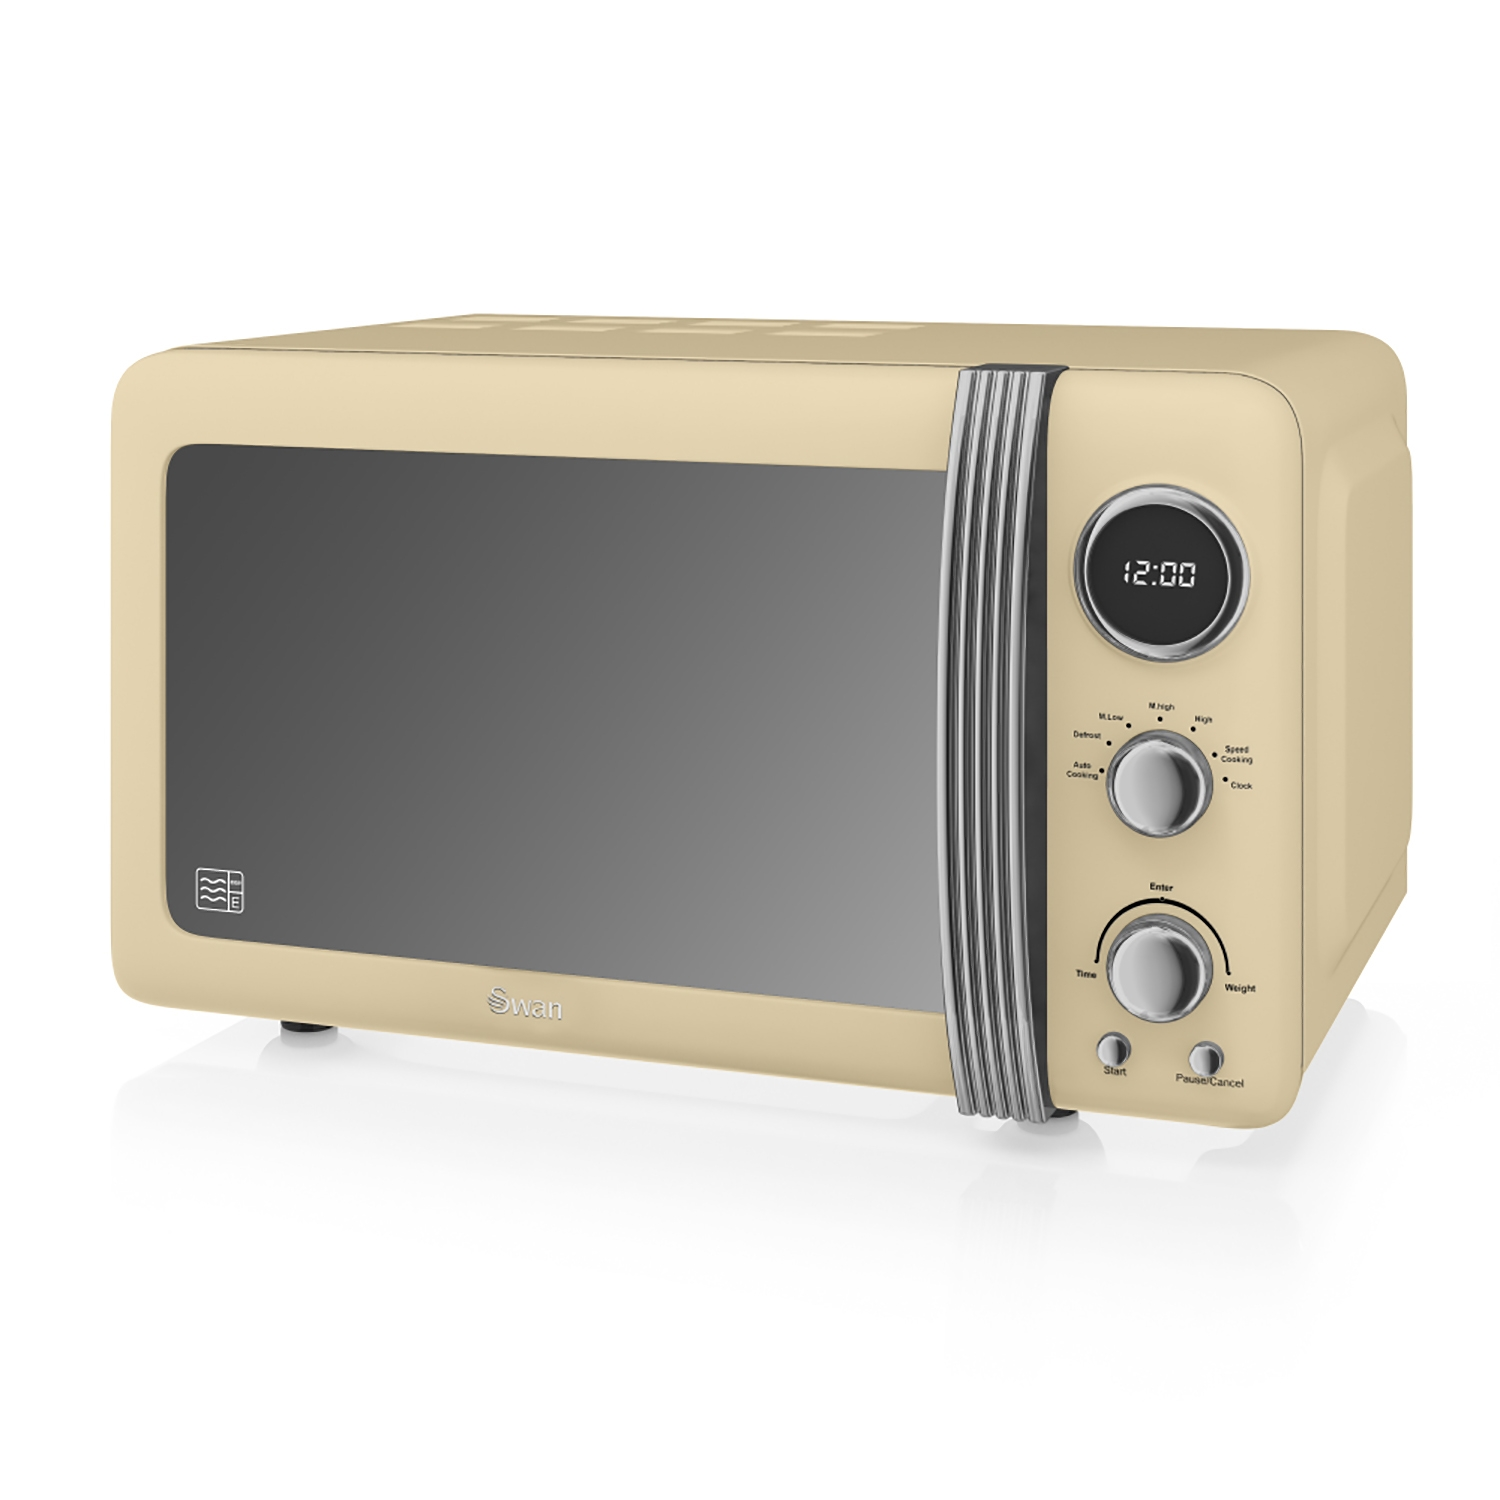 Image of Swan Retro Digital Microwave 20 Litre, Cream